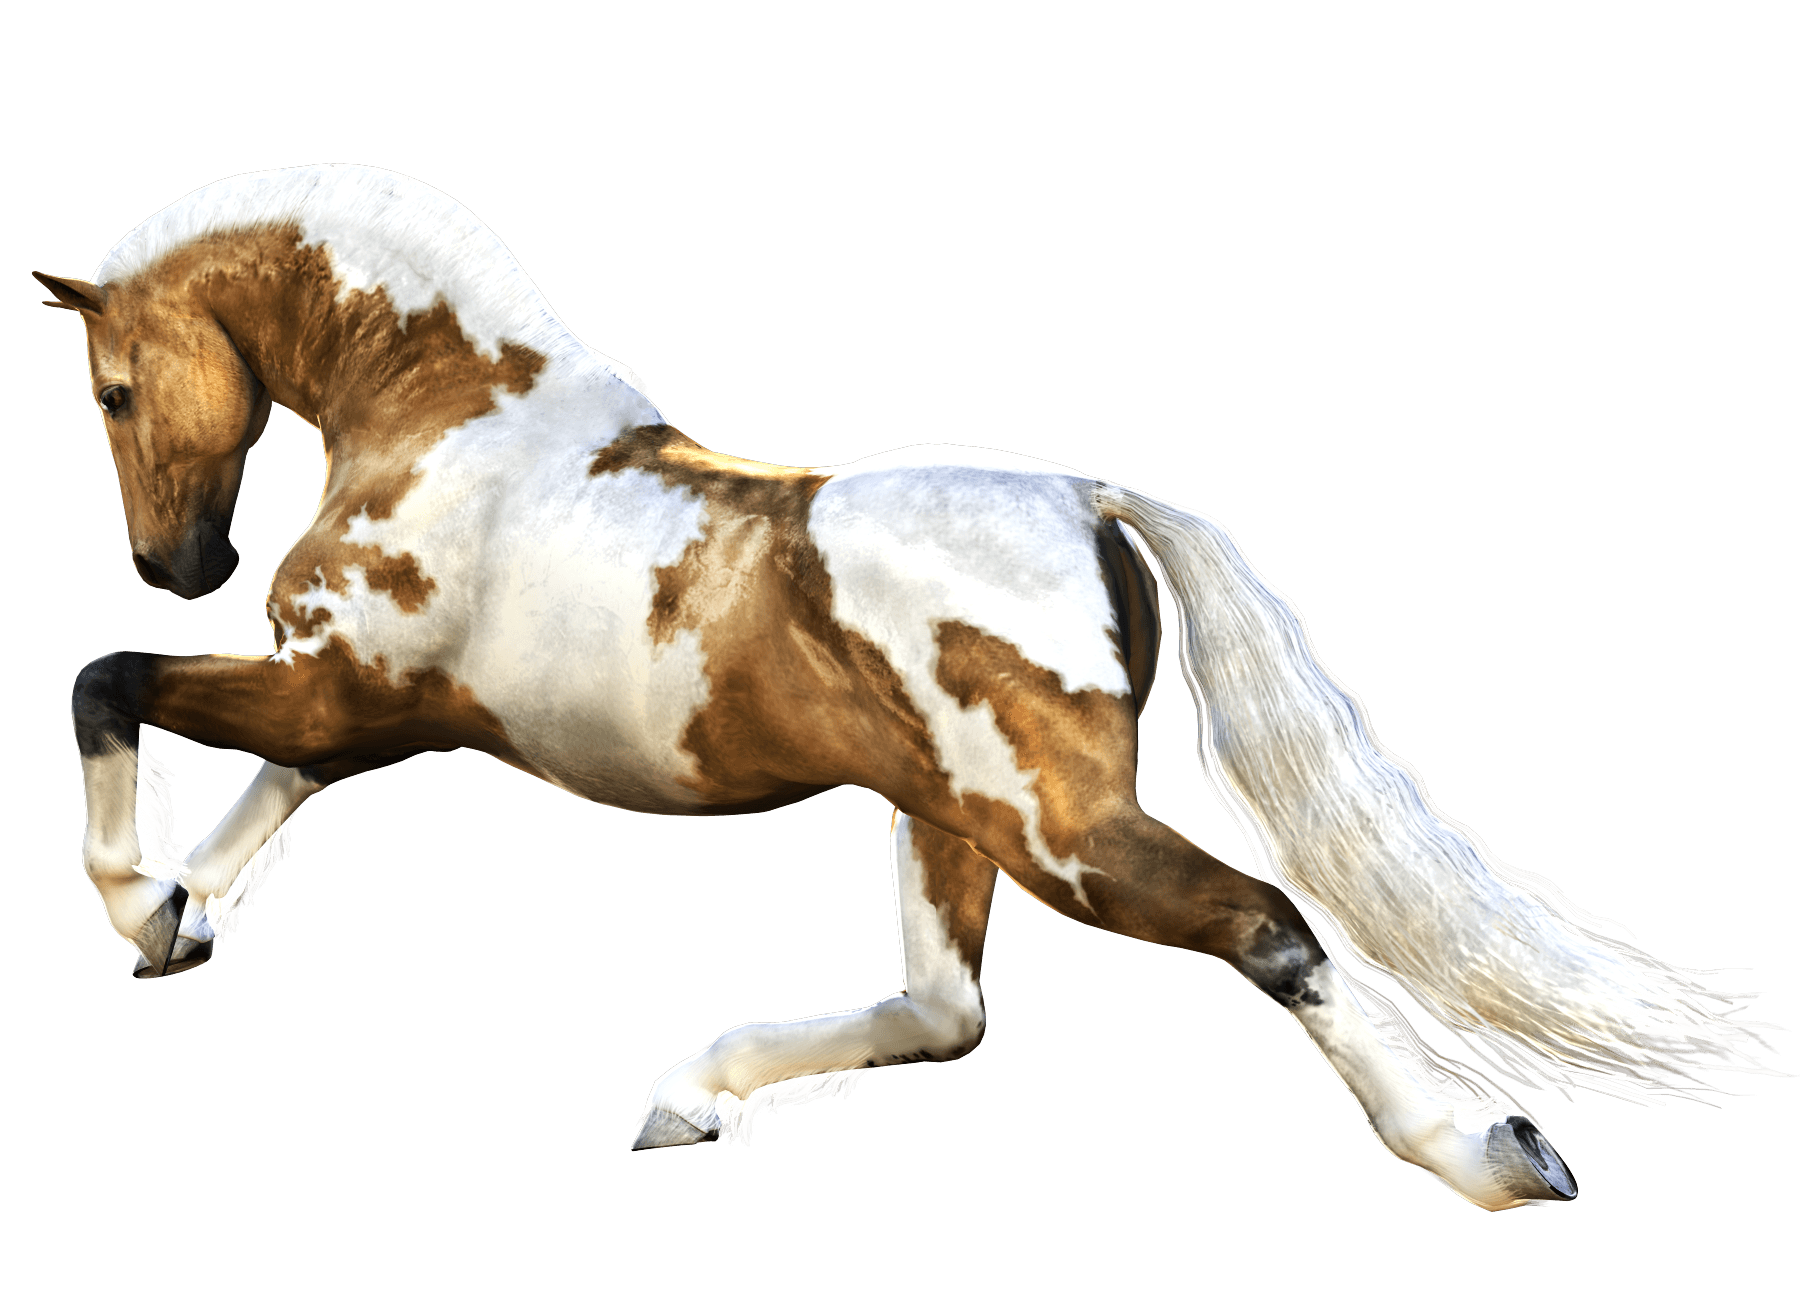 Brown And White Horse Png Image Horses Brown And White Horse Horse Decor